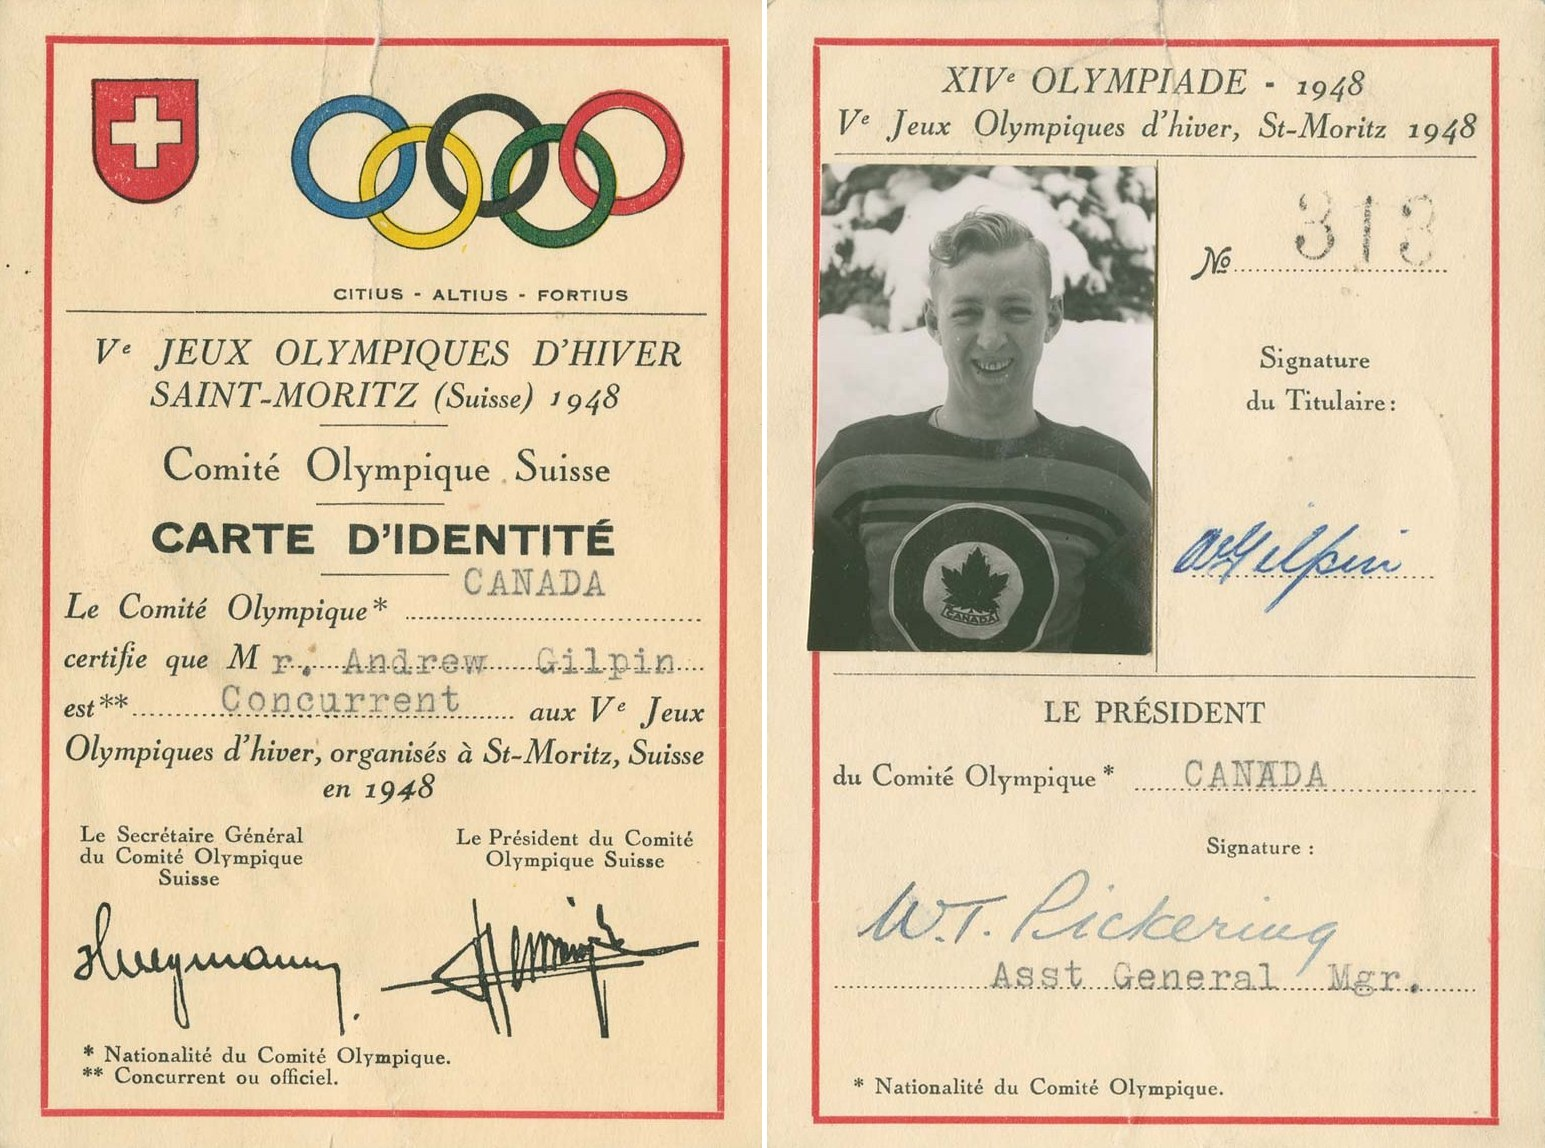 Photo: RCAF Flyer Andy Gilpin 1948 Olympic CARTE D'IDENTITÉ